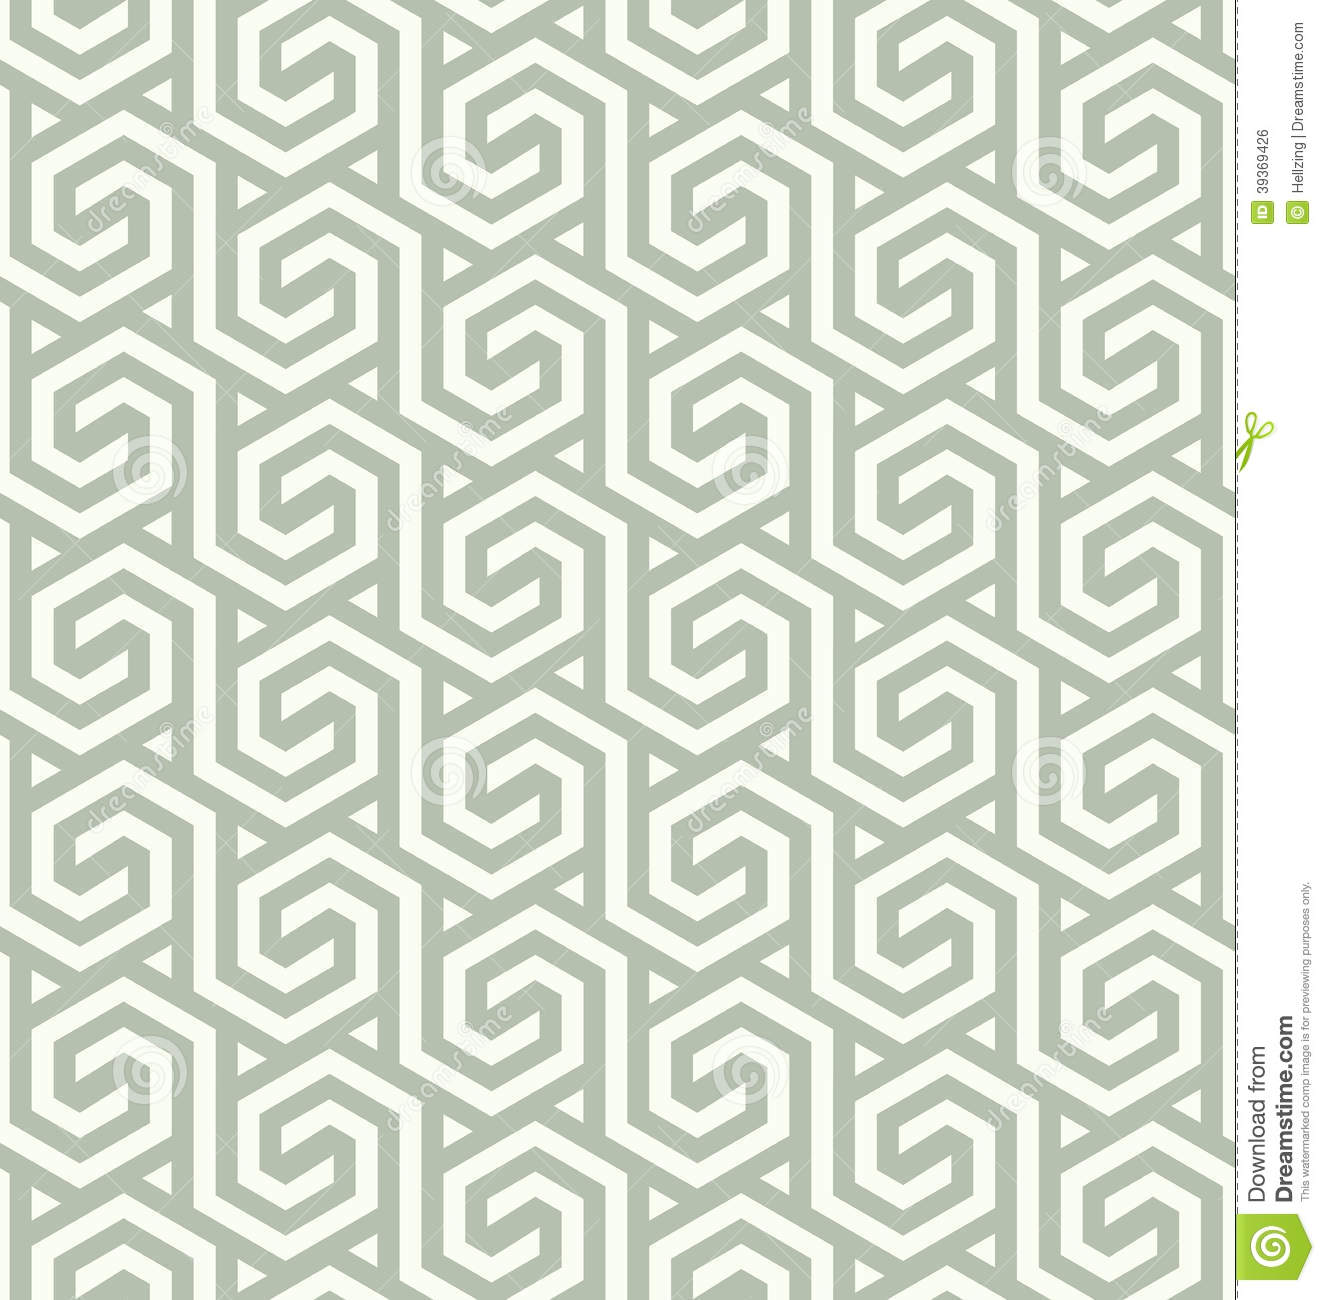 Royalty Free Stock Image Seamless Abstract Geometric Hexagonal Pattern Vector Eps Retro Made Shapes Gray Colors Suitable Web Print Wallpaper Image39369426 besides Wentworth Option 1 moreover Stock Image Wardrobe Detail Built Open Shelves Image31027511 in addition Troughton as well Stock Image School Gym Indoor Elementary Empty Image39823391. on home designs and floor plans with prices